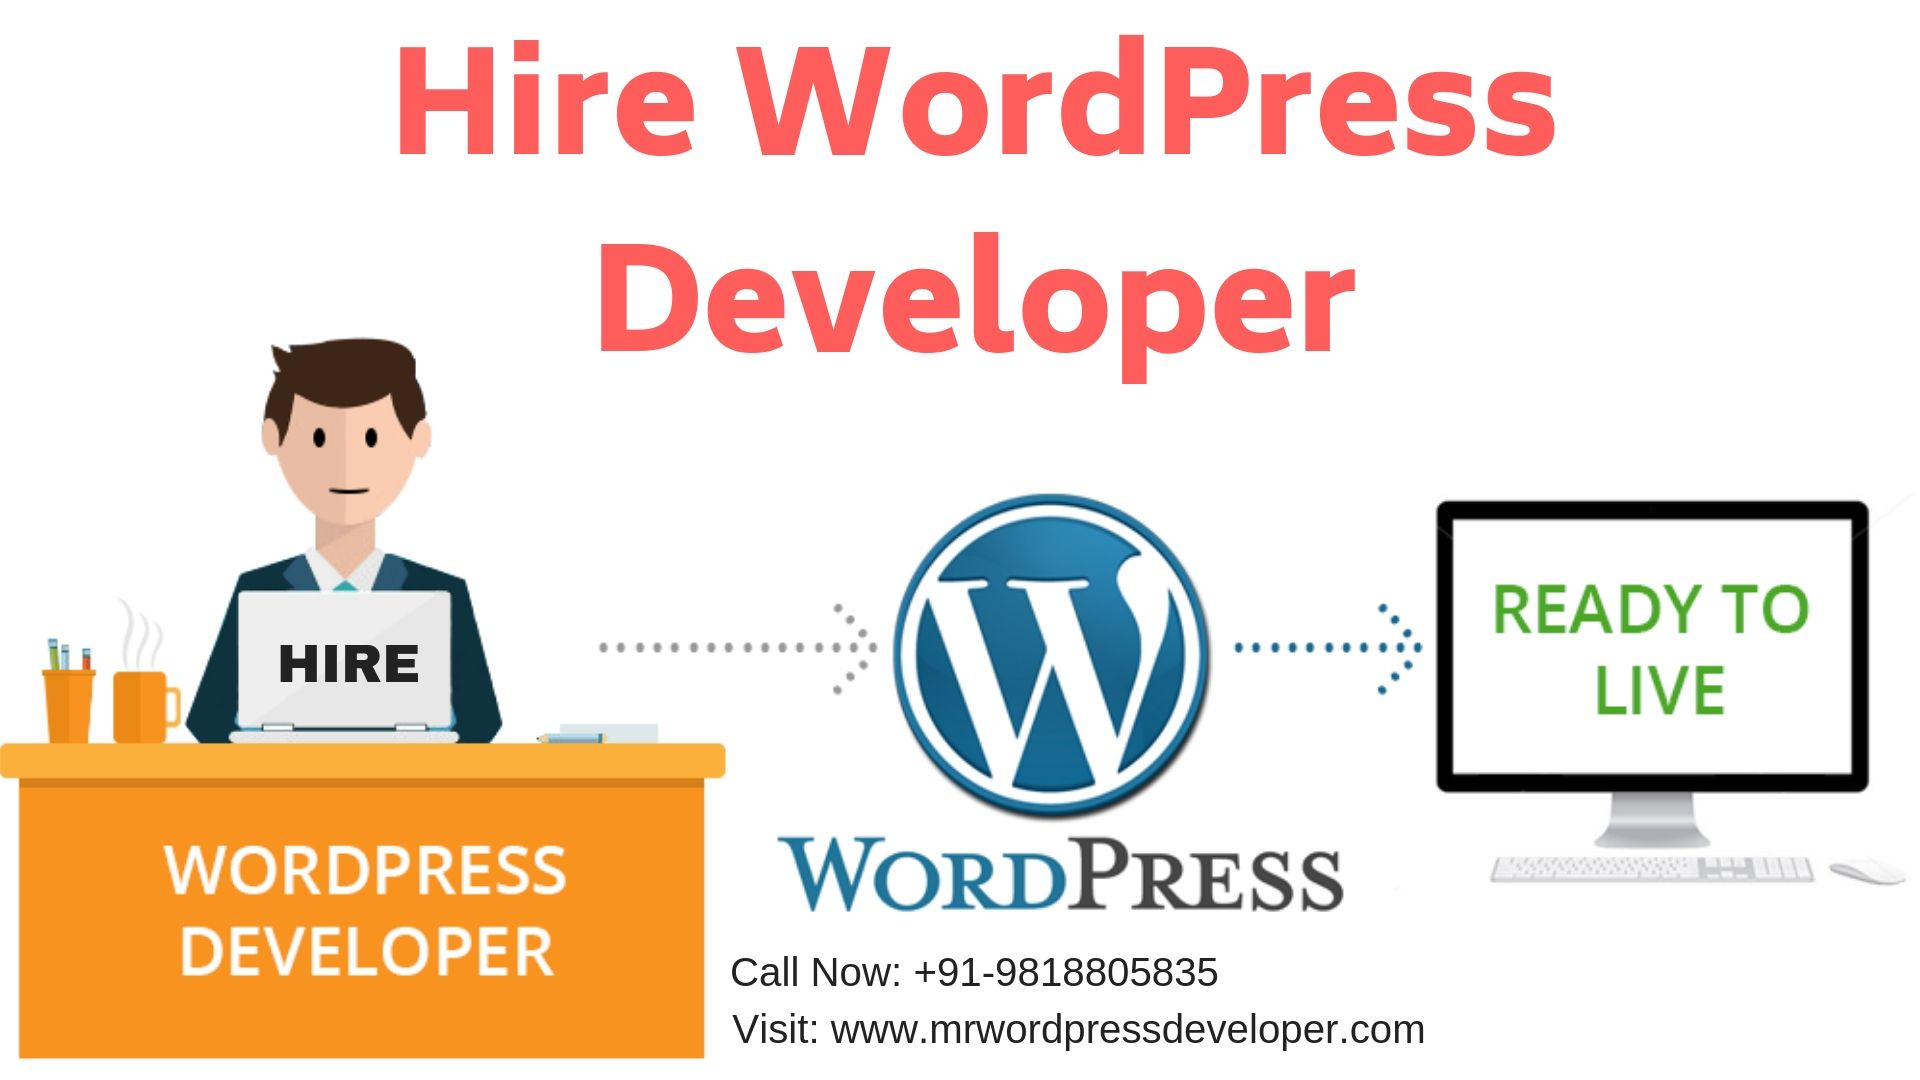 As a freelance WordPress developer in USA, I have developed many CMS